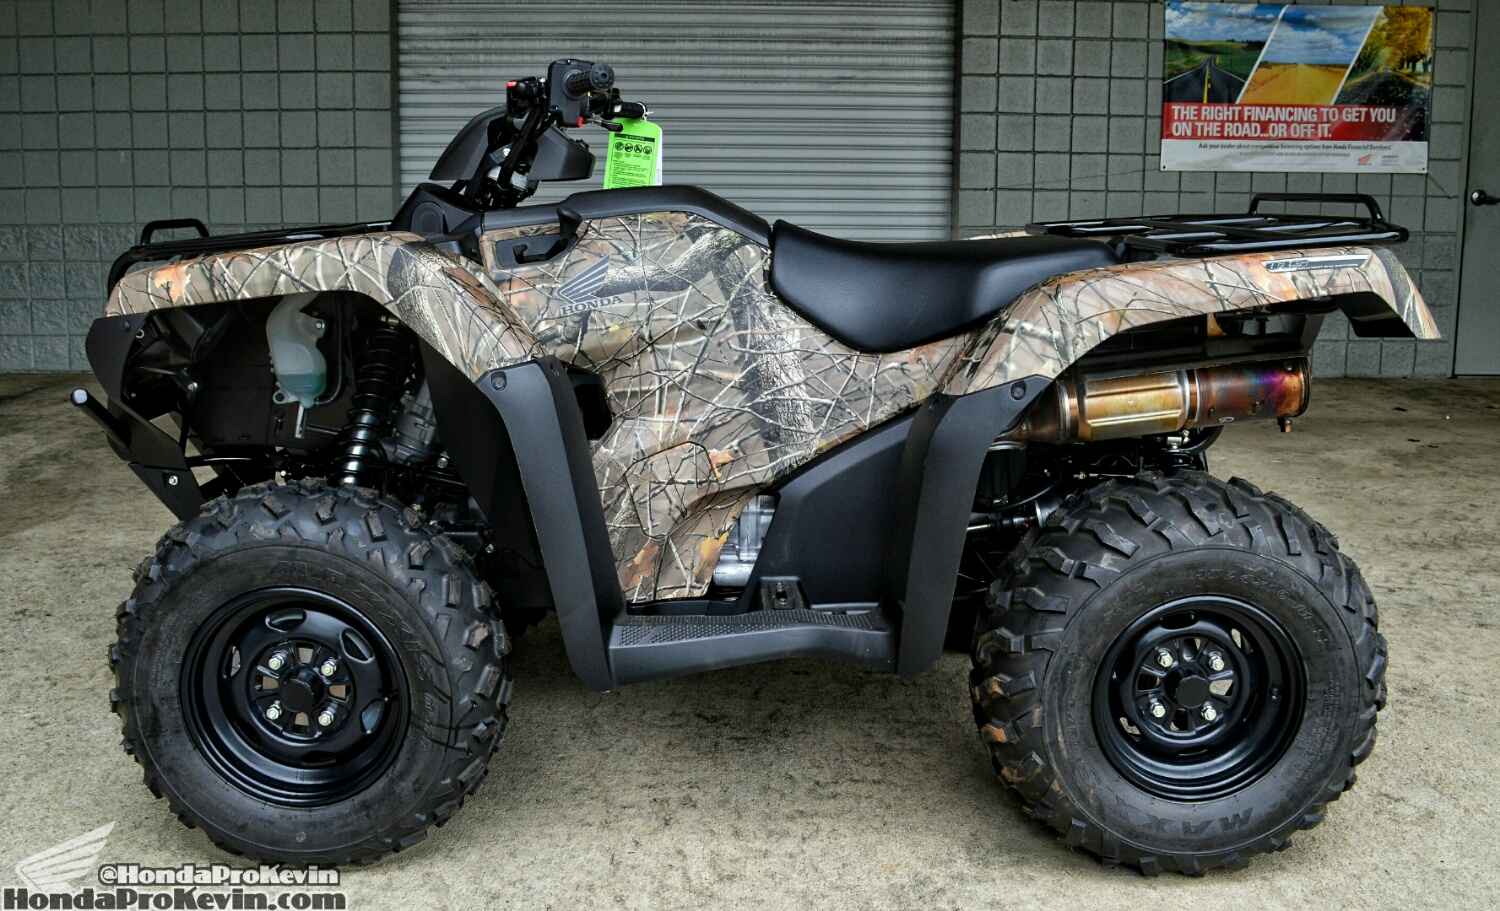 hight resolution of how did honda try to remedy this situation when it comes to the rancher 420 atv model lineup they went through and picked the best selling models and